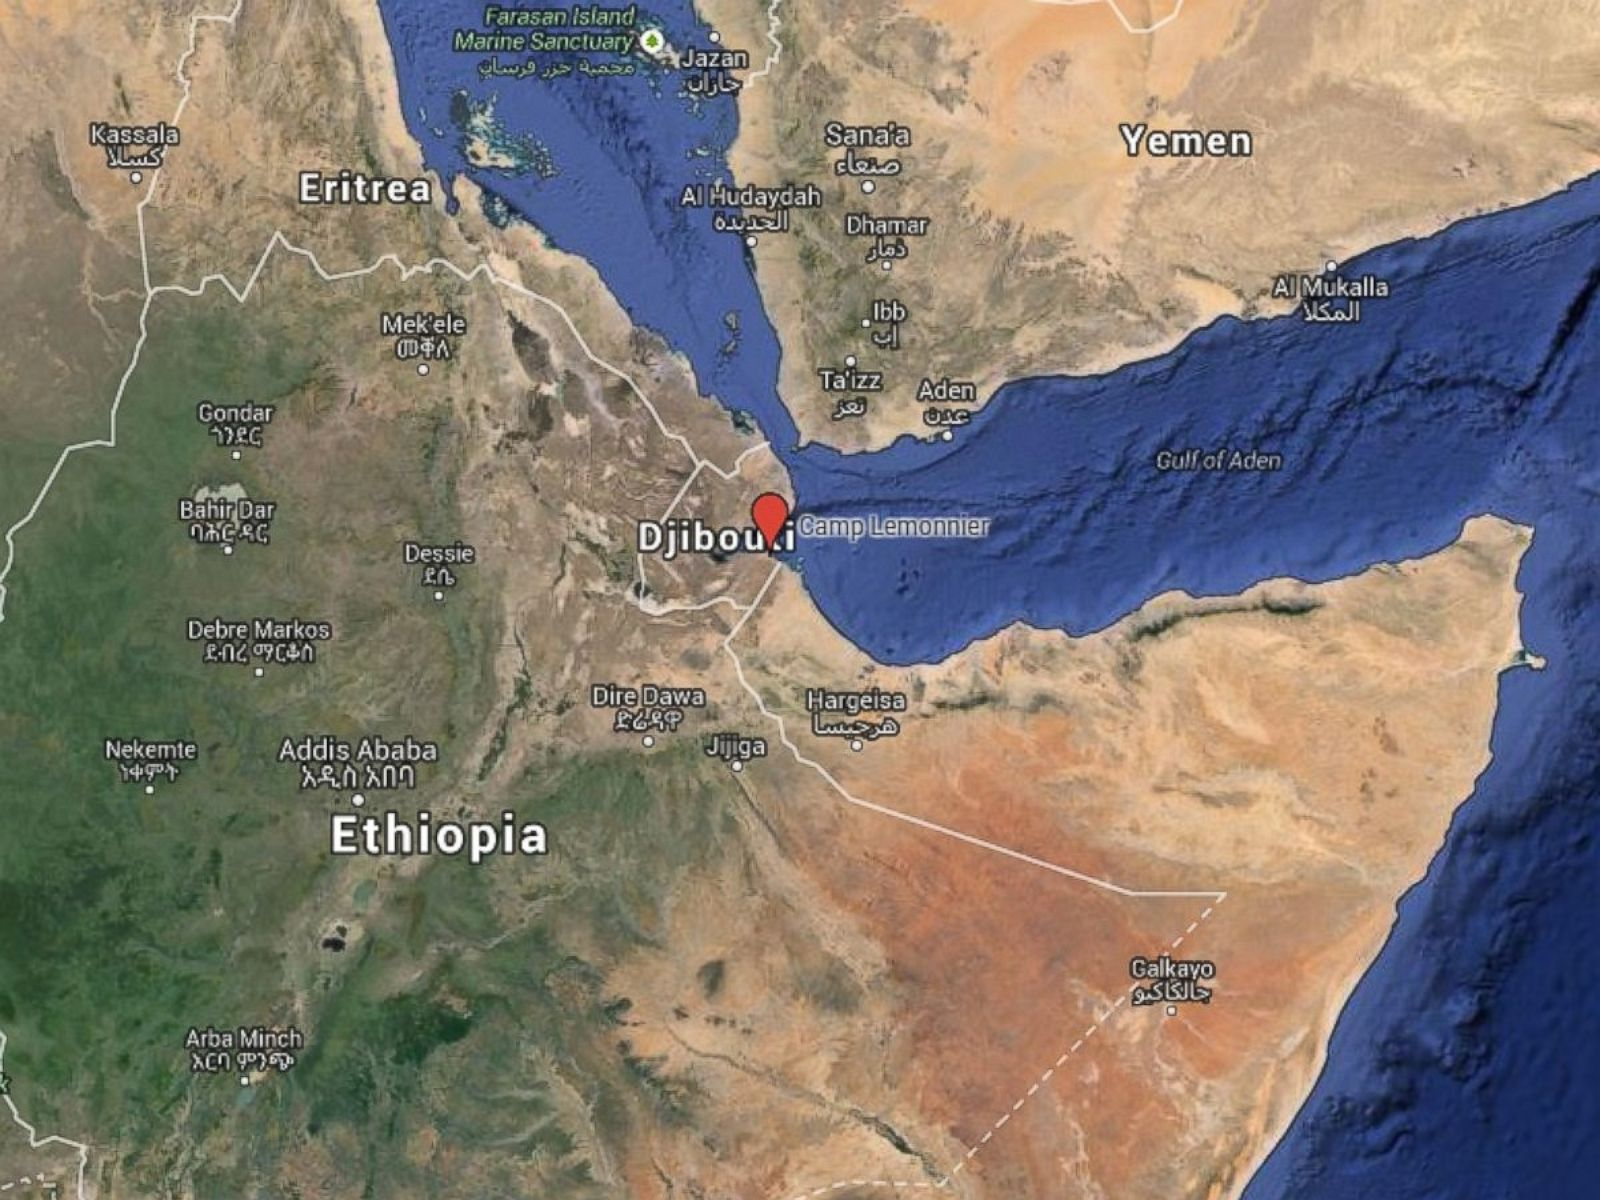 Mystery Surrounds NASA's Secret Mission in Africa - ABC News